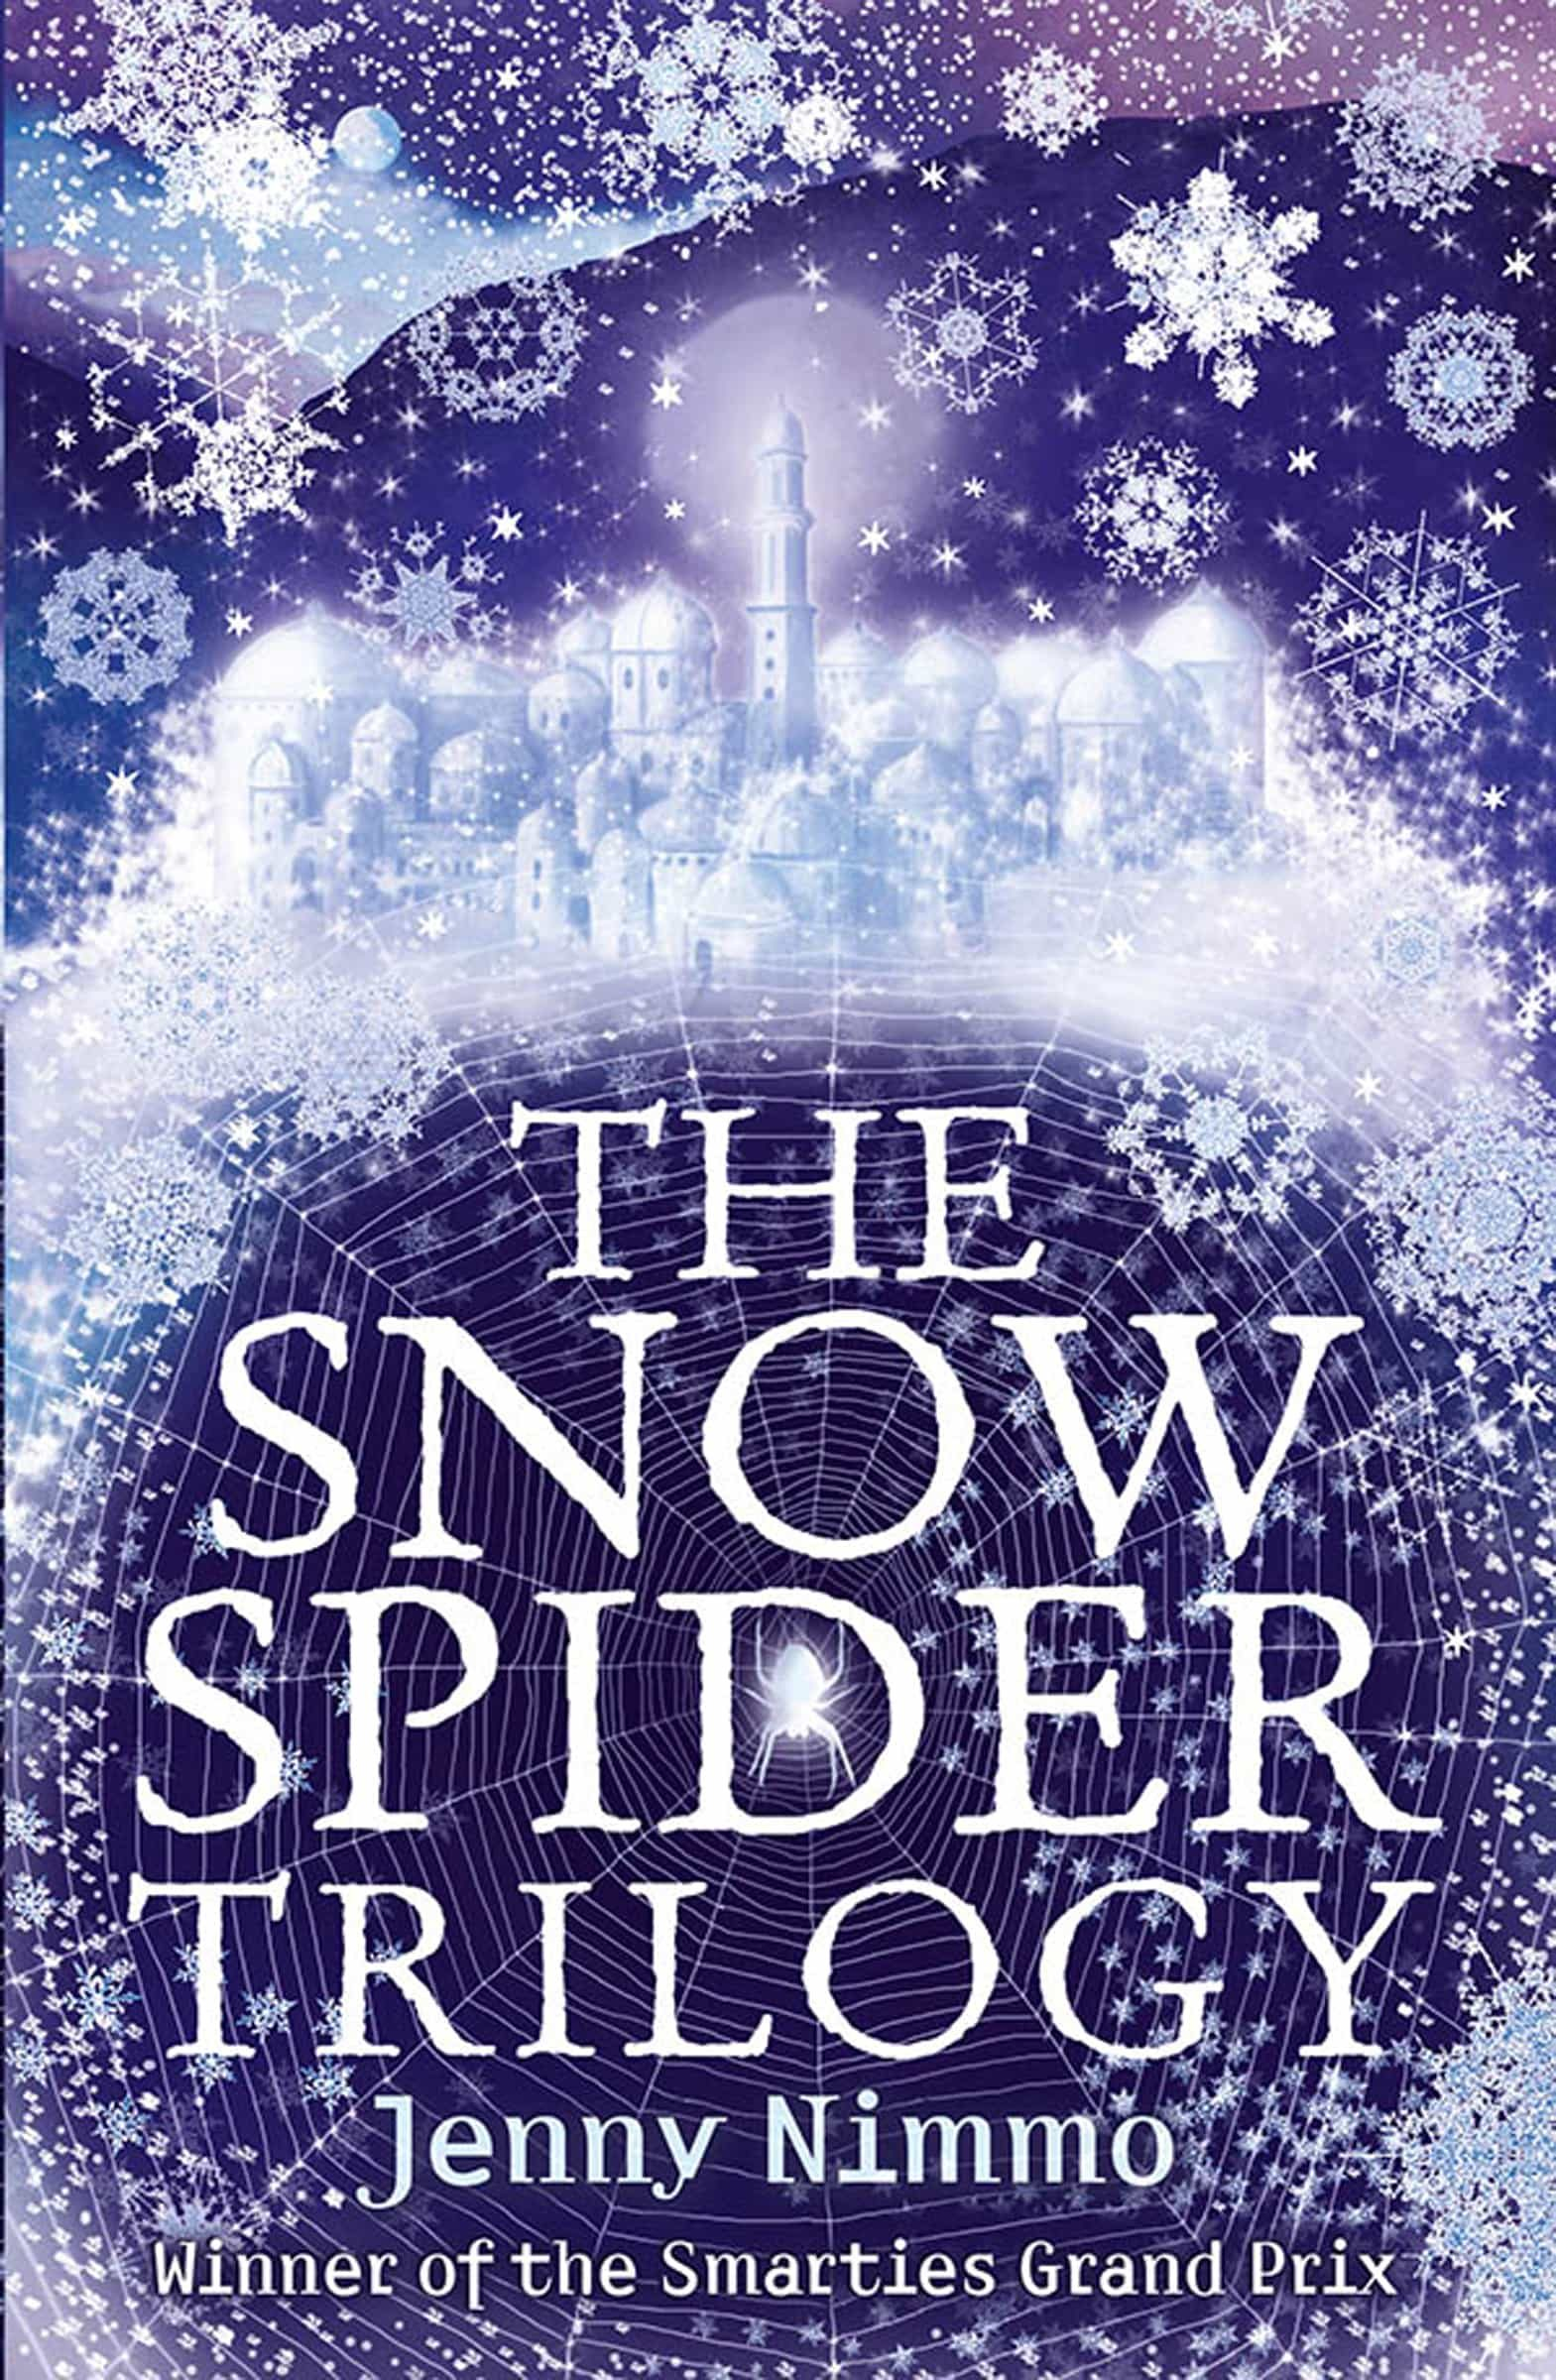 The Snow Spider Trilogy (ebook)jenny Nimmo9781780311487